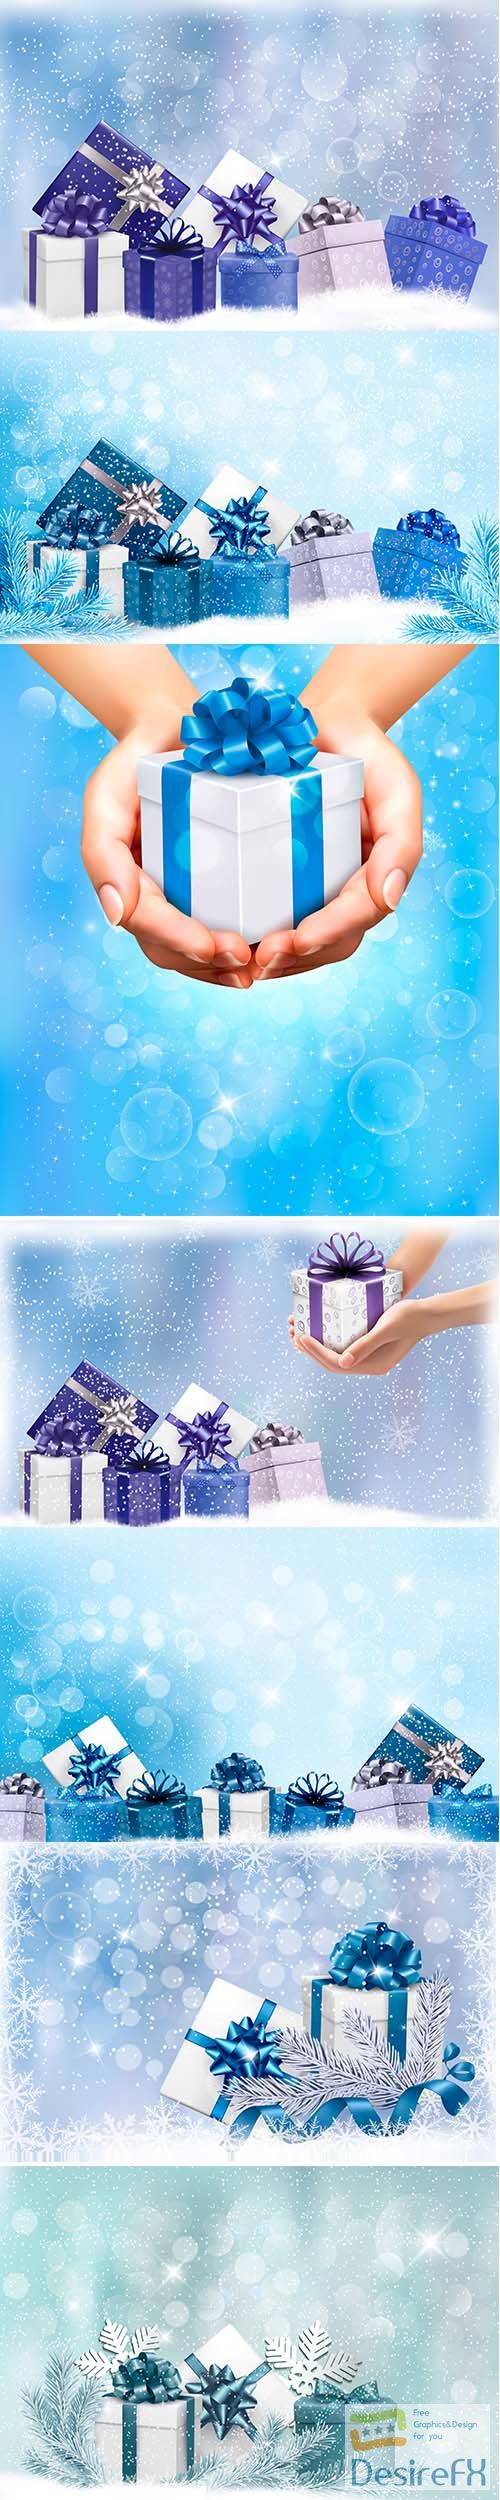 Christmas blue background with gift boxes snowflake